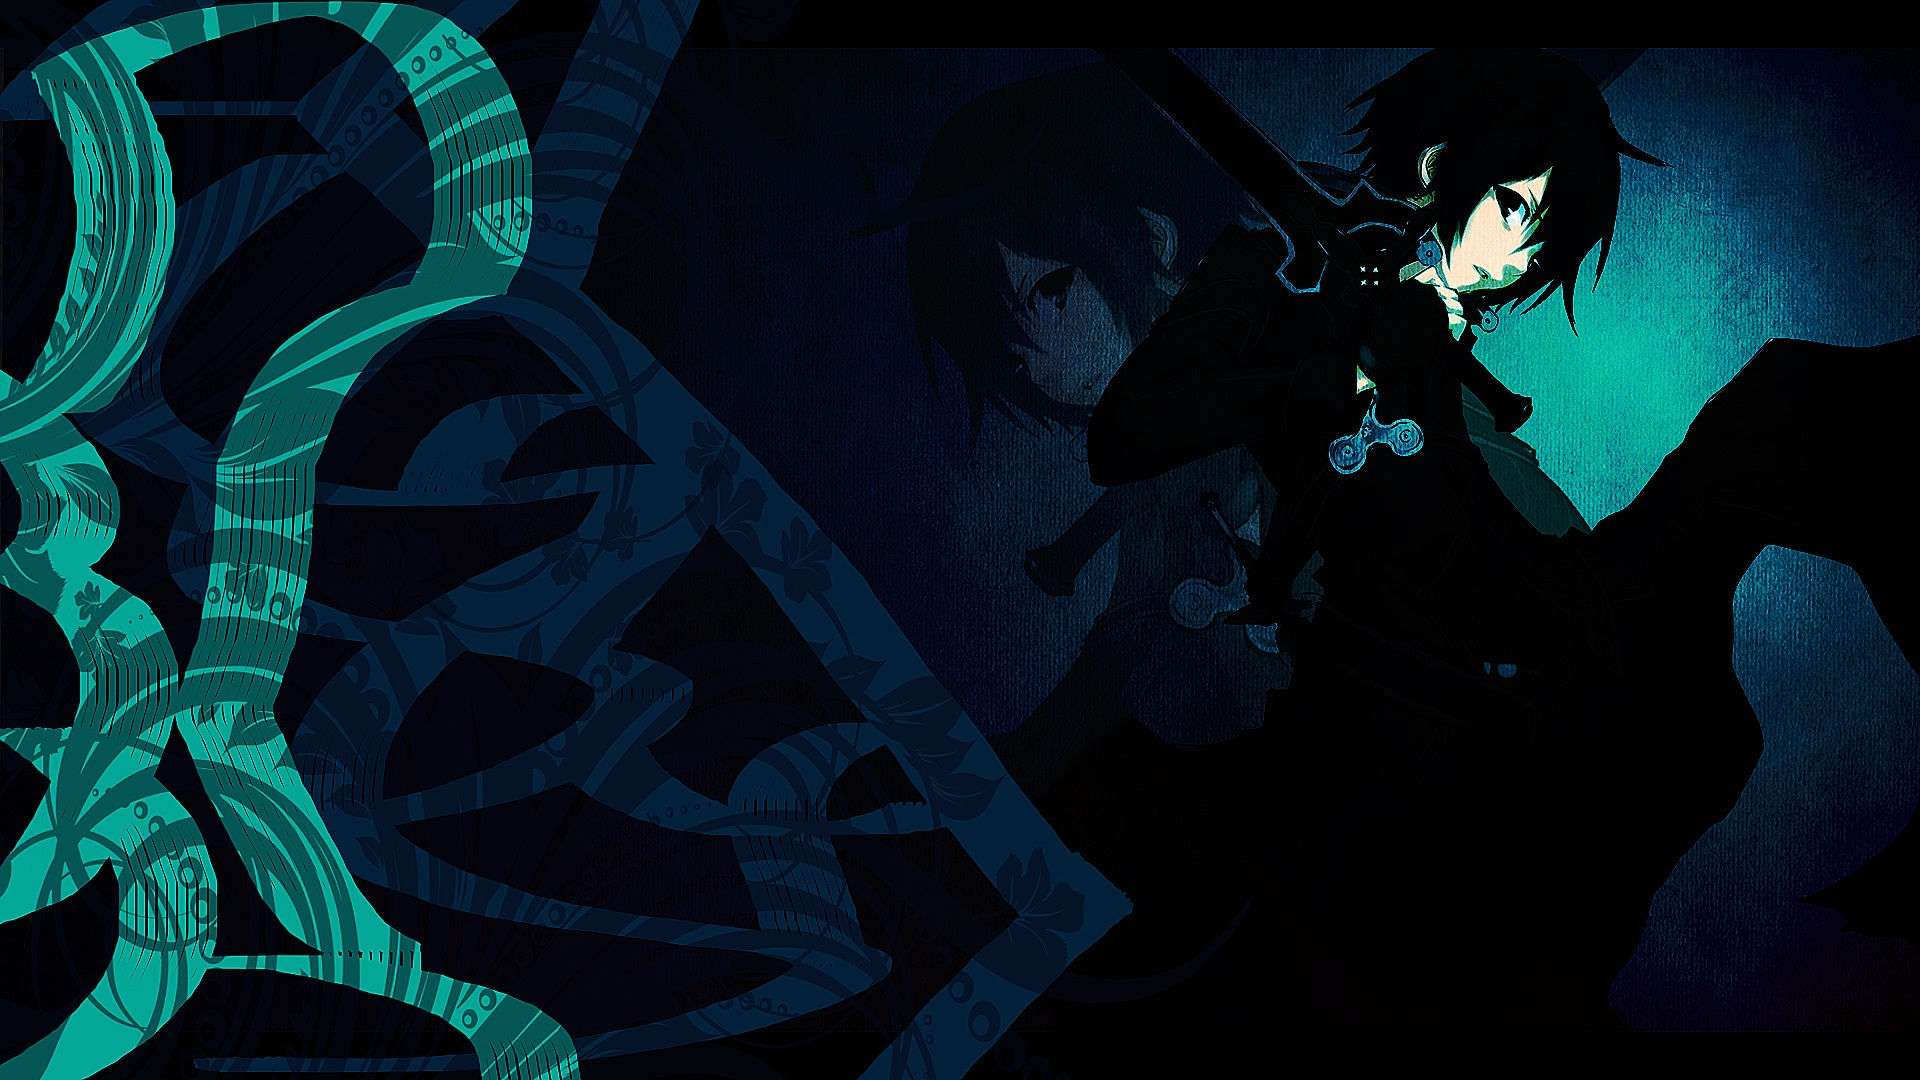 Sword Art Online Anime Wallpaper 041